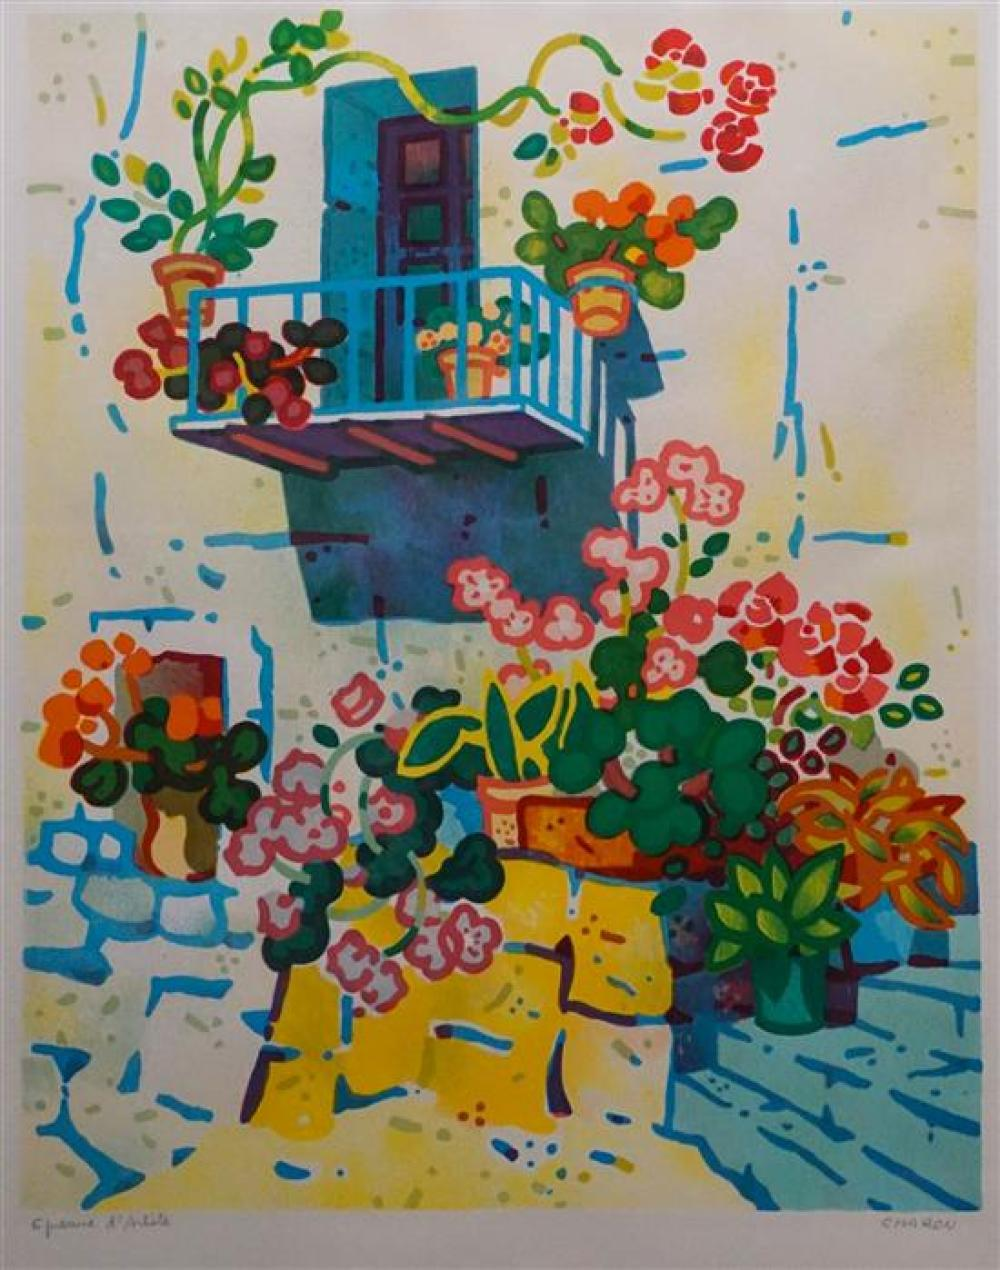 Guy Charon (French b. 1927), Flower Garden, Lithograph in Color, Signed and Inscribed Epreuve d'Artiste, Sight size: 26-1/2 x 20 in